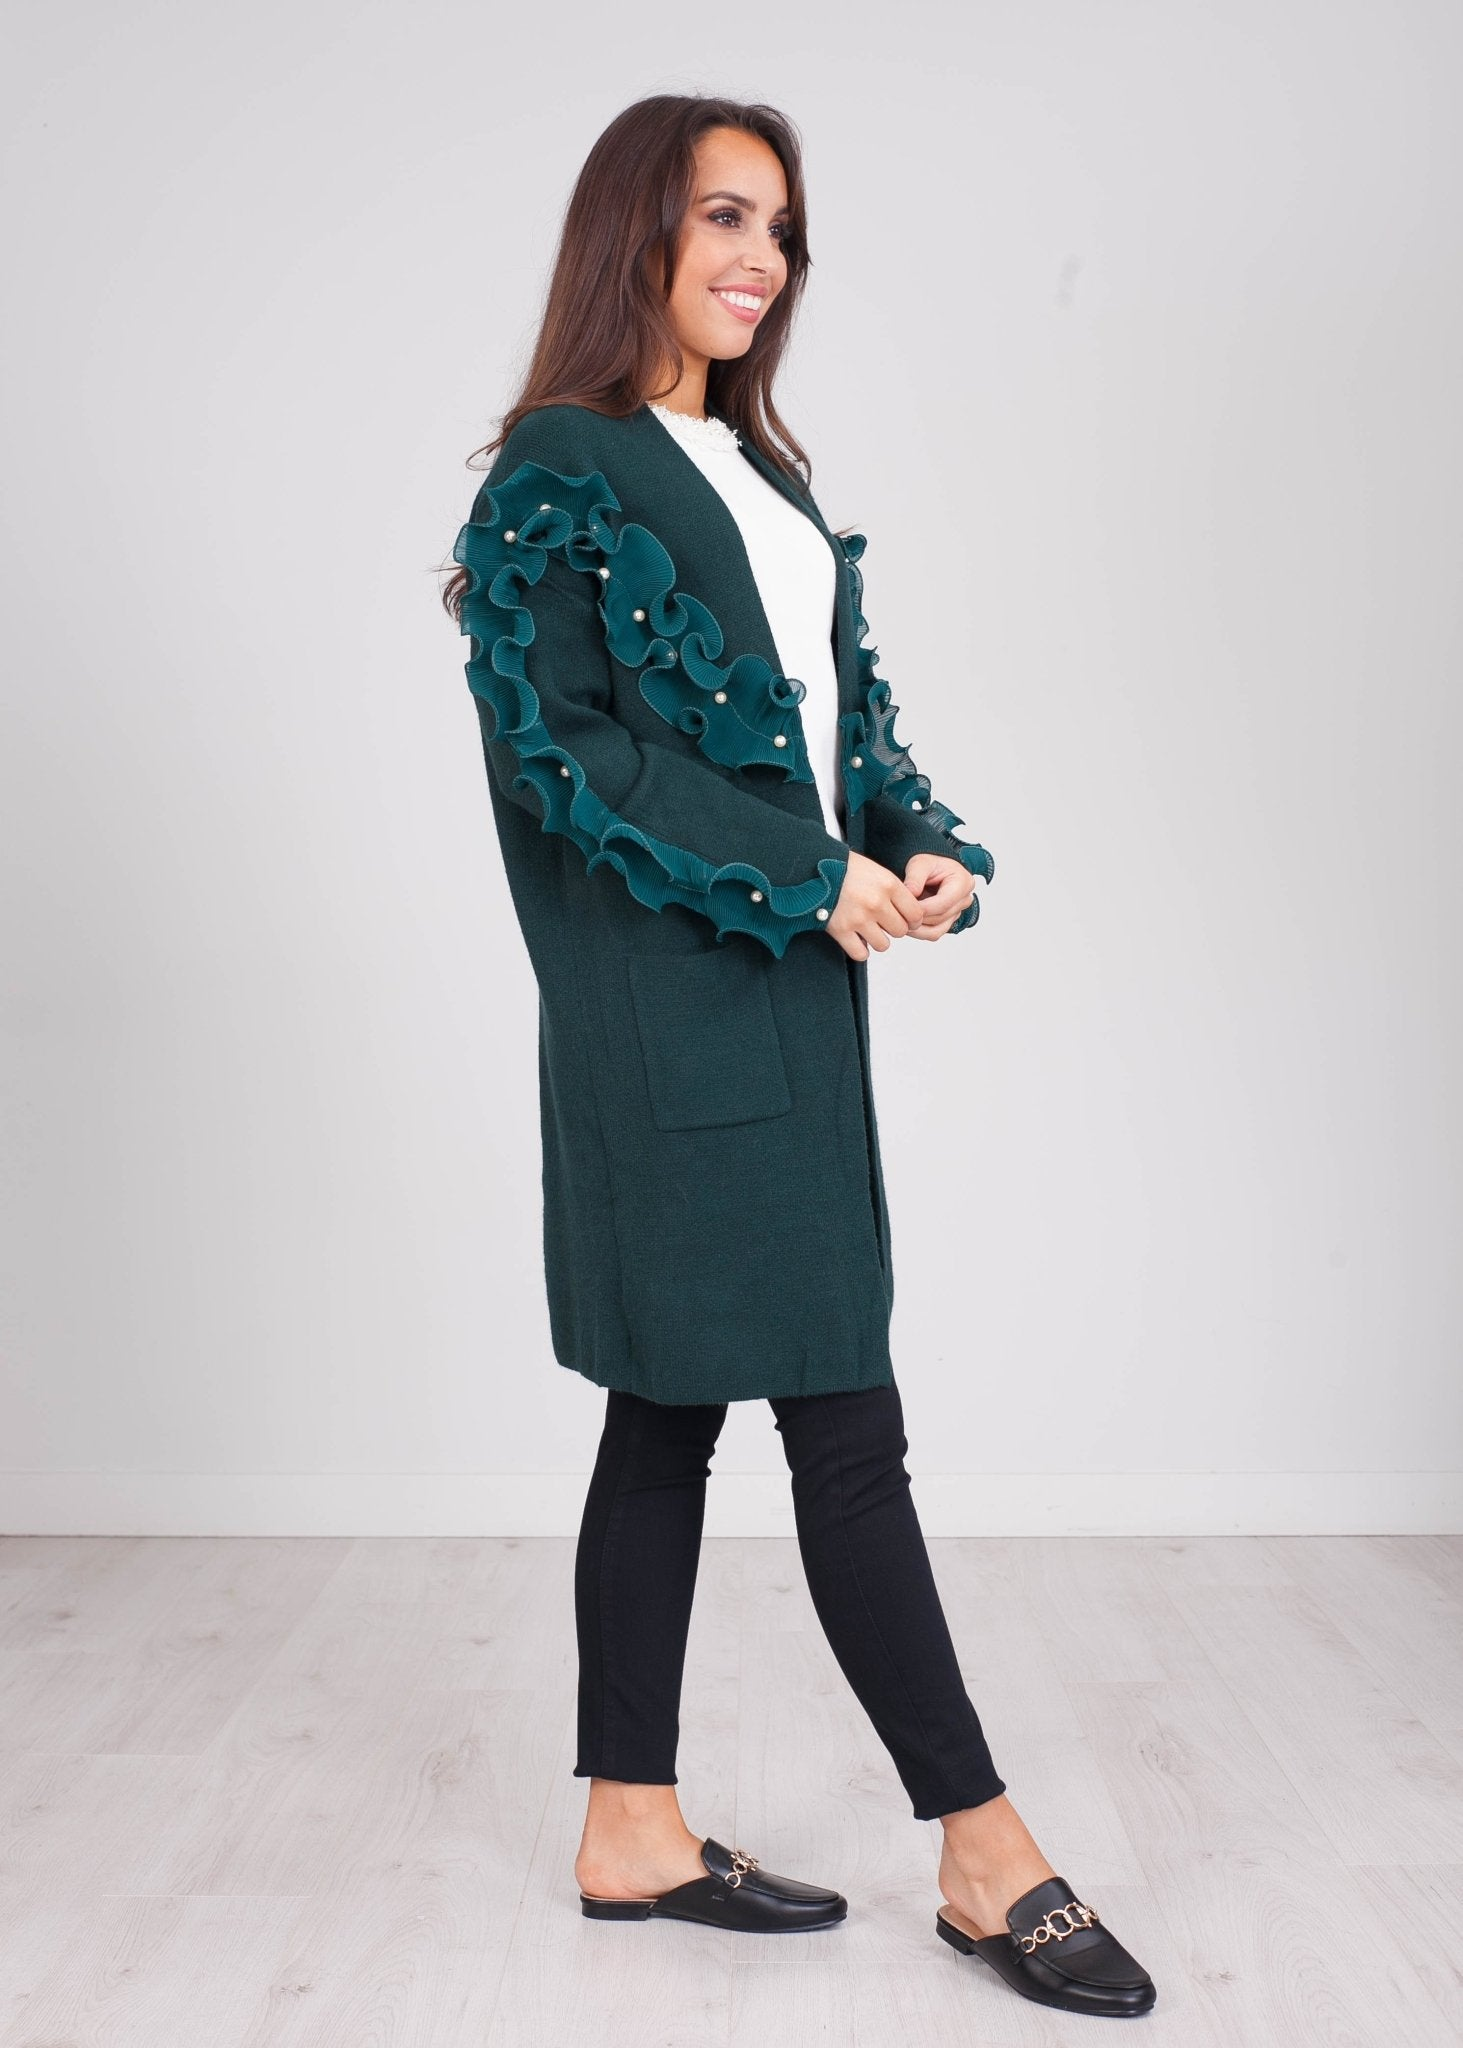 Emilia Green Ruffle & Pearl Cardigan - The Walk in Wardrobe